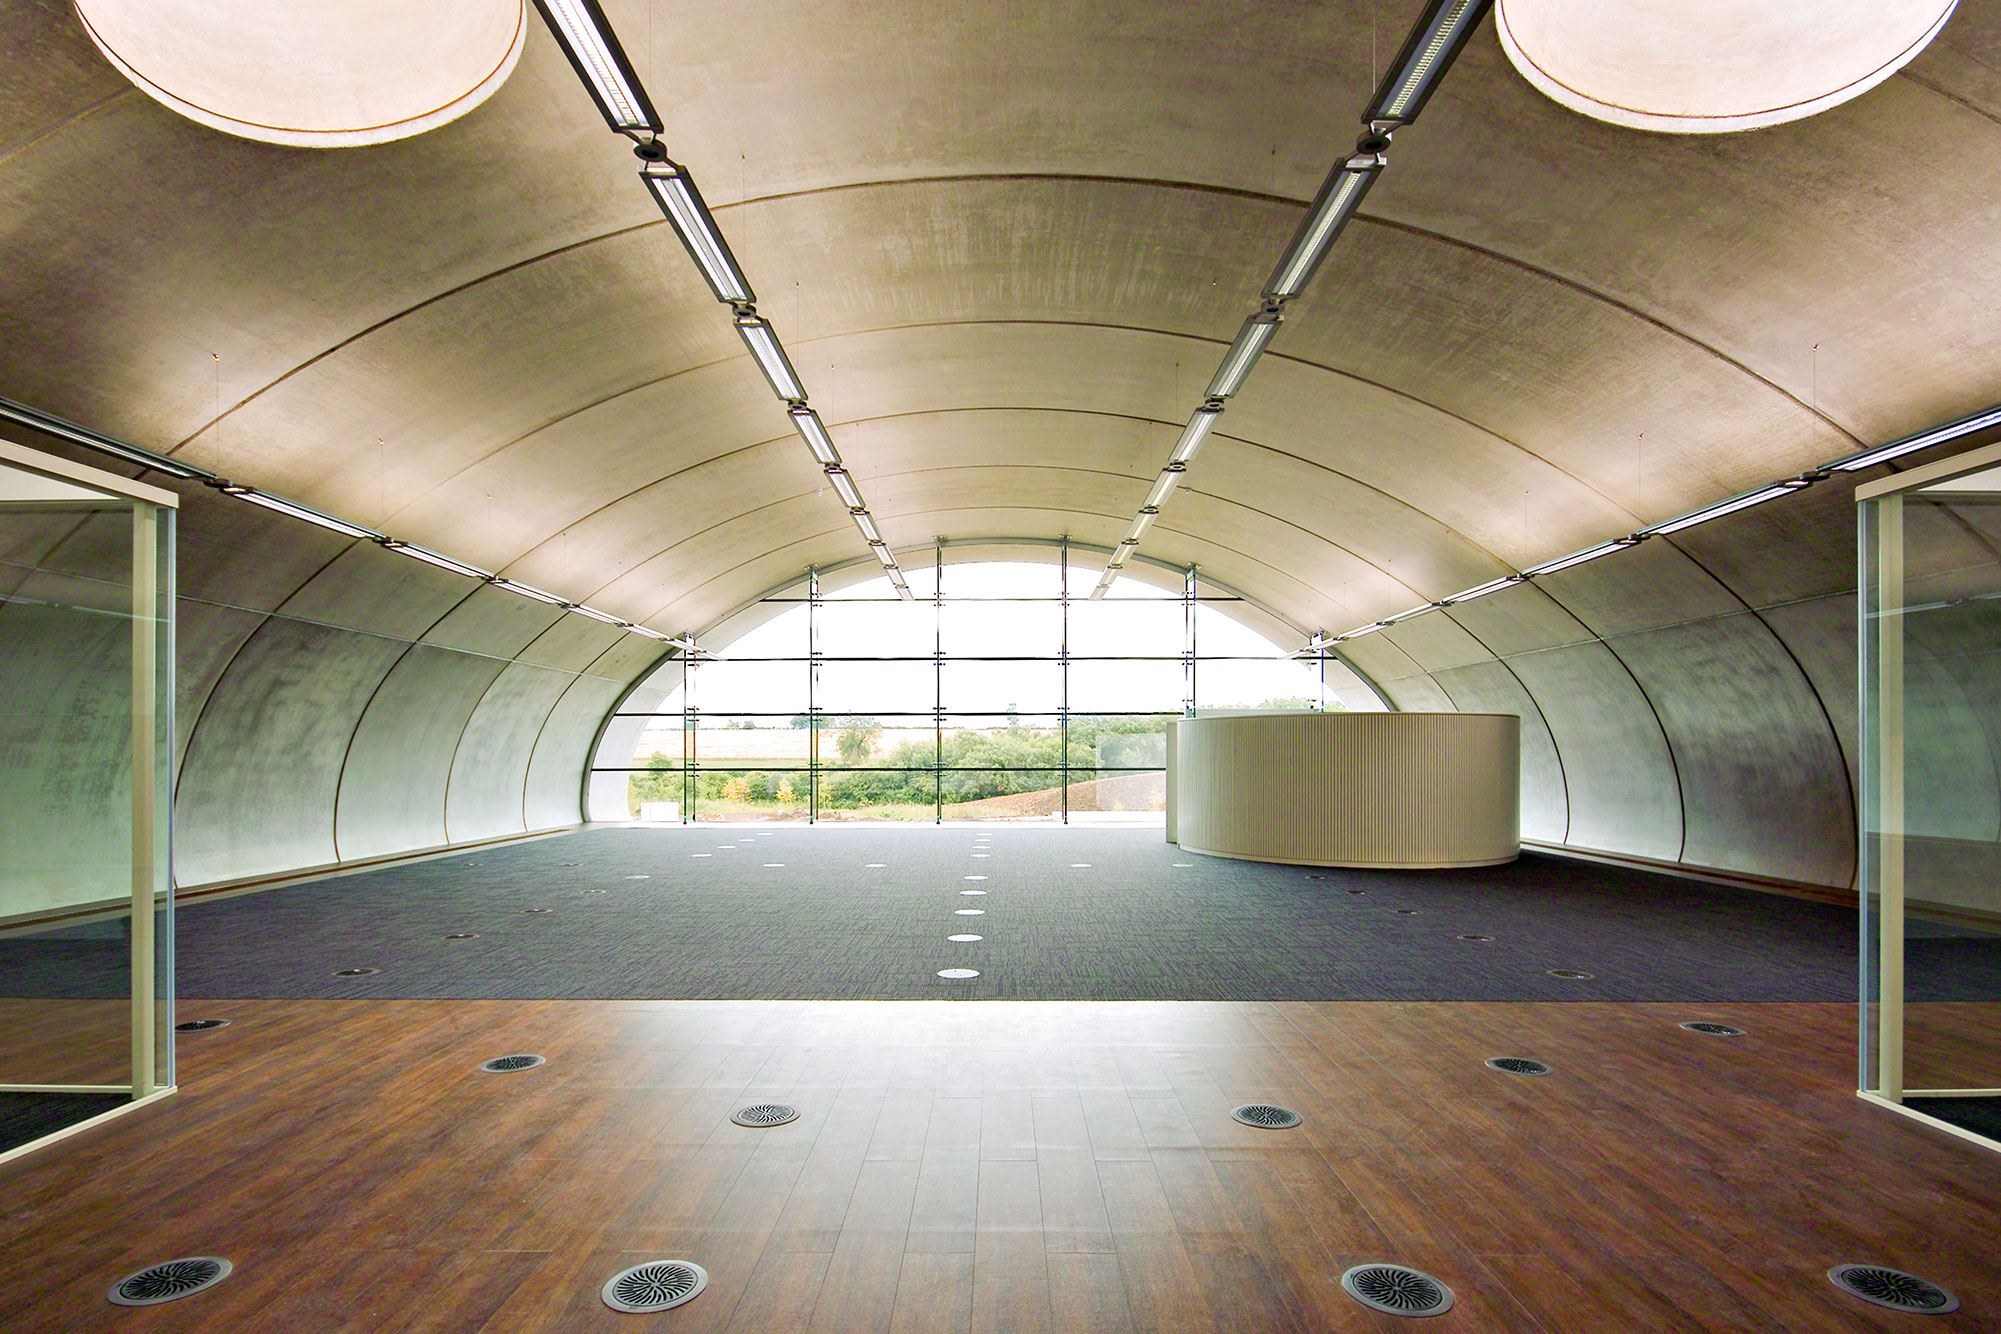 Virtual Wind Tunnel, Enstone